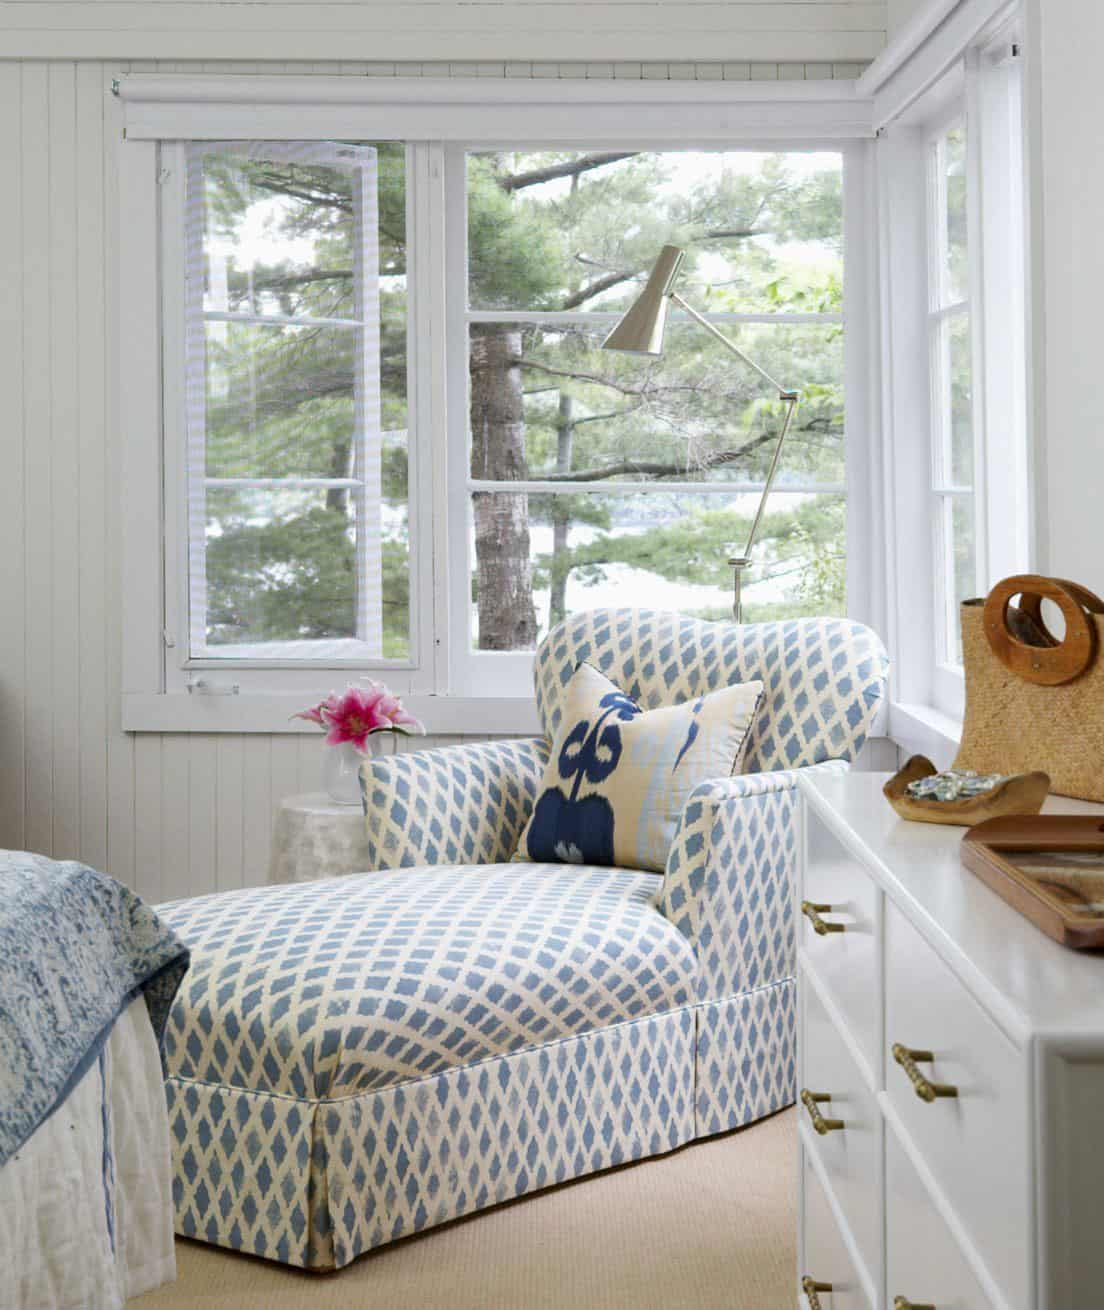 Lake Joseph Cottage-Anne Hepfer-10-1 Kindesign